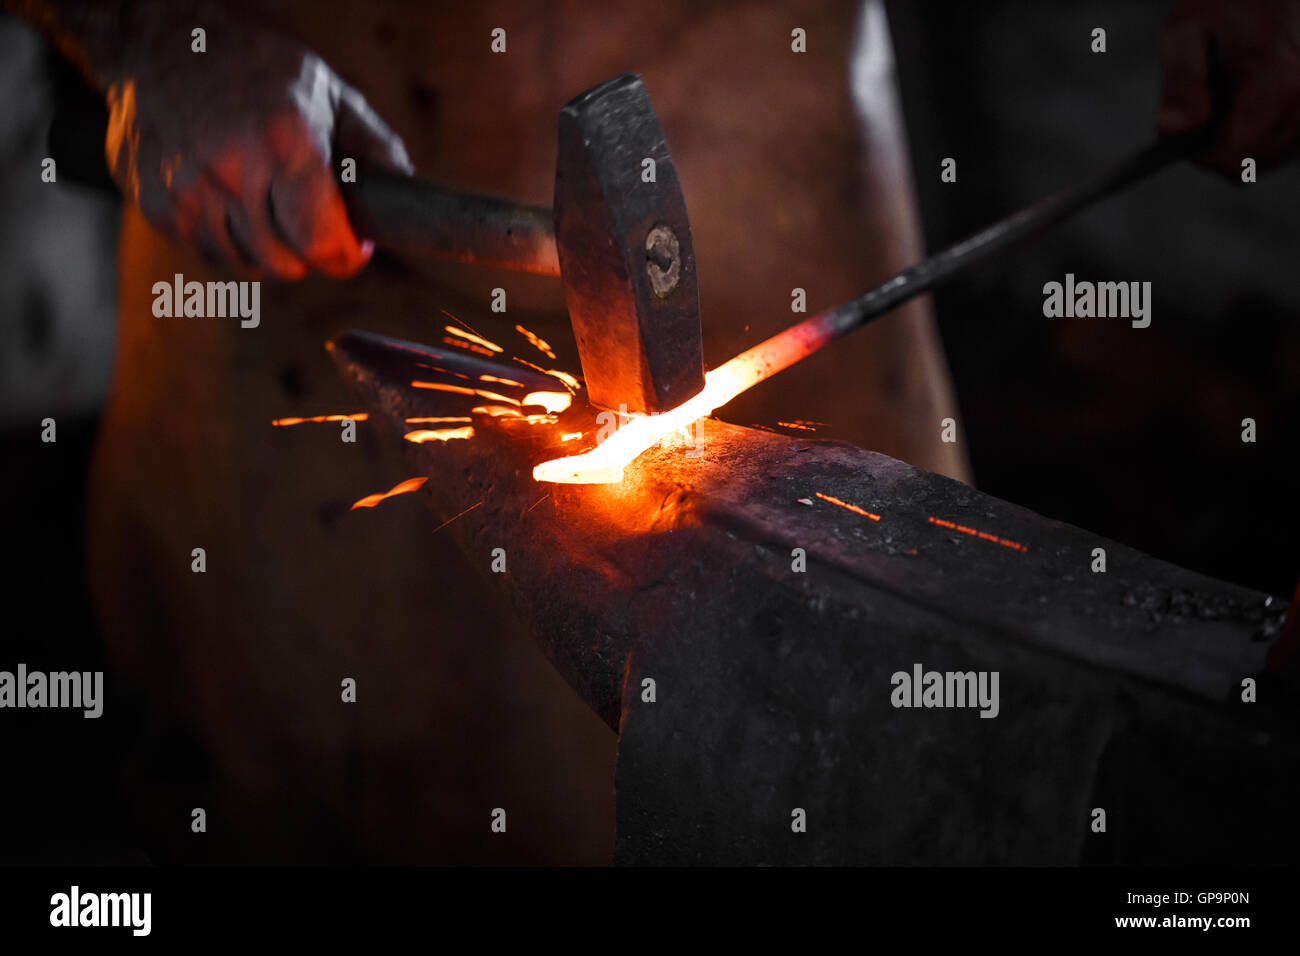 The blacksmith manually forging the molten metal on the anvil in smithy with spark fireworks - Stock Image